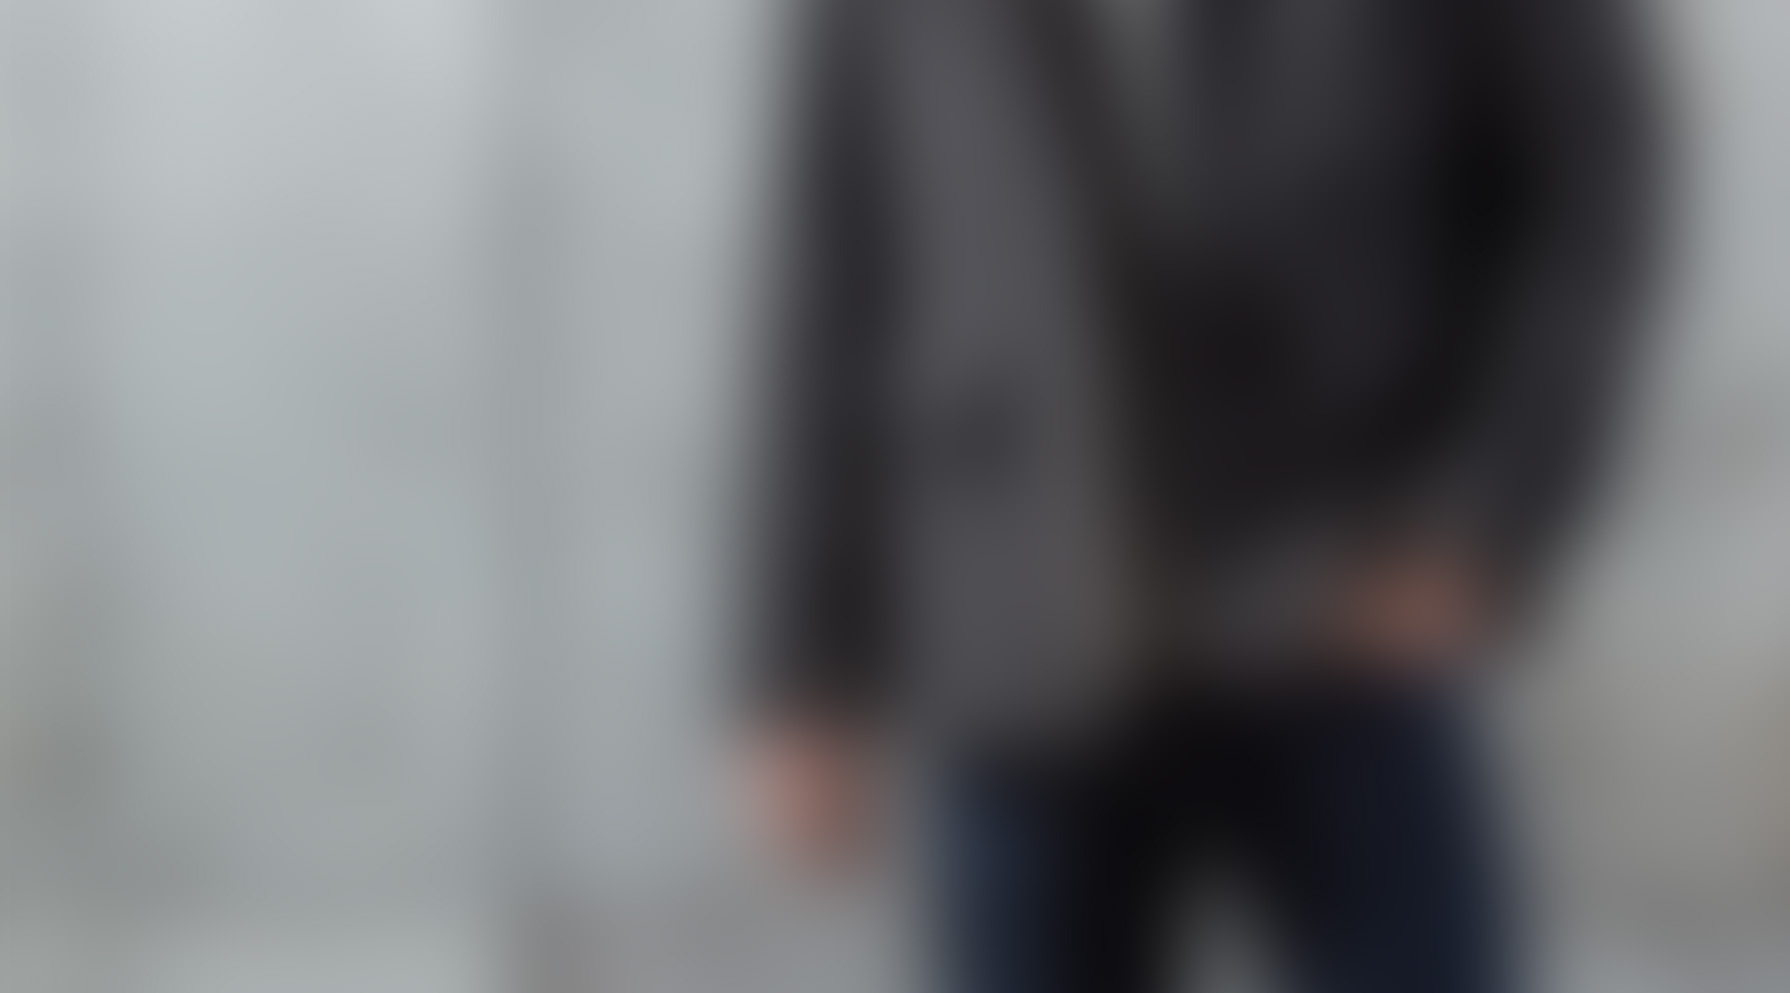 blurred image of a man's torso wearing a grey jacket and blue jeans